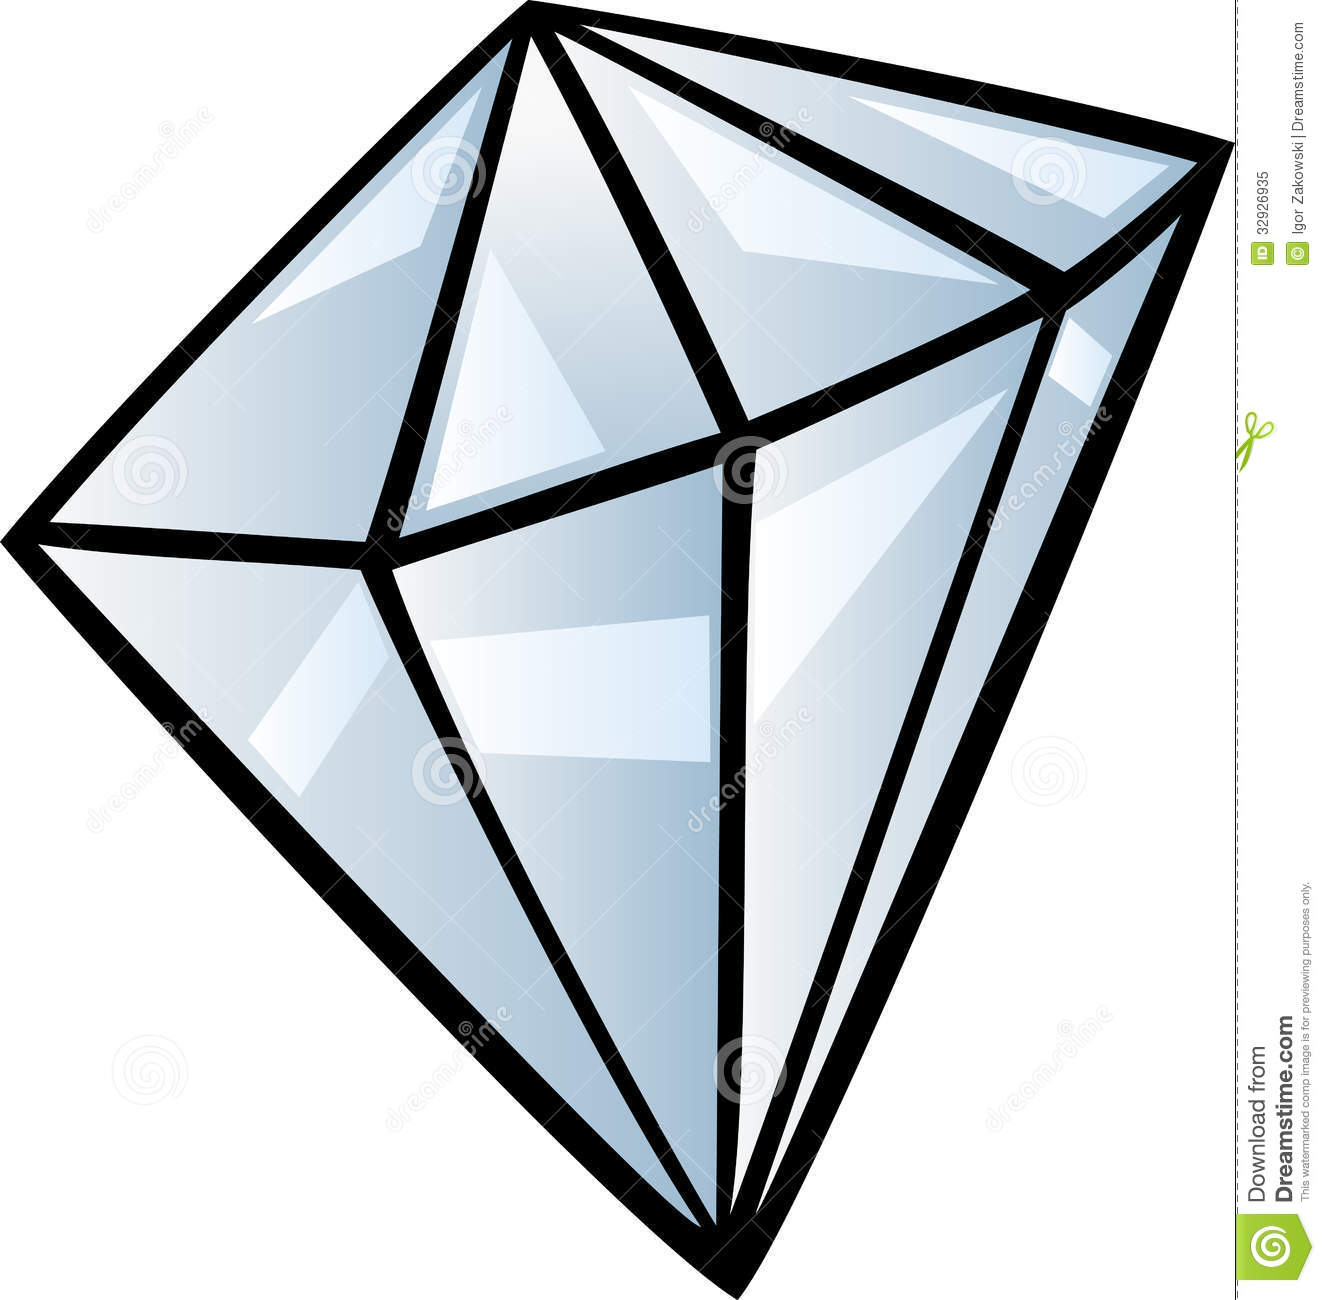 Cartoon Illustration of Diamond Gem Stone Clip Art.